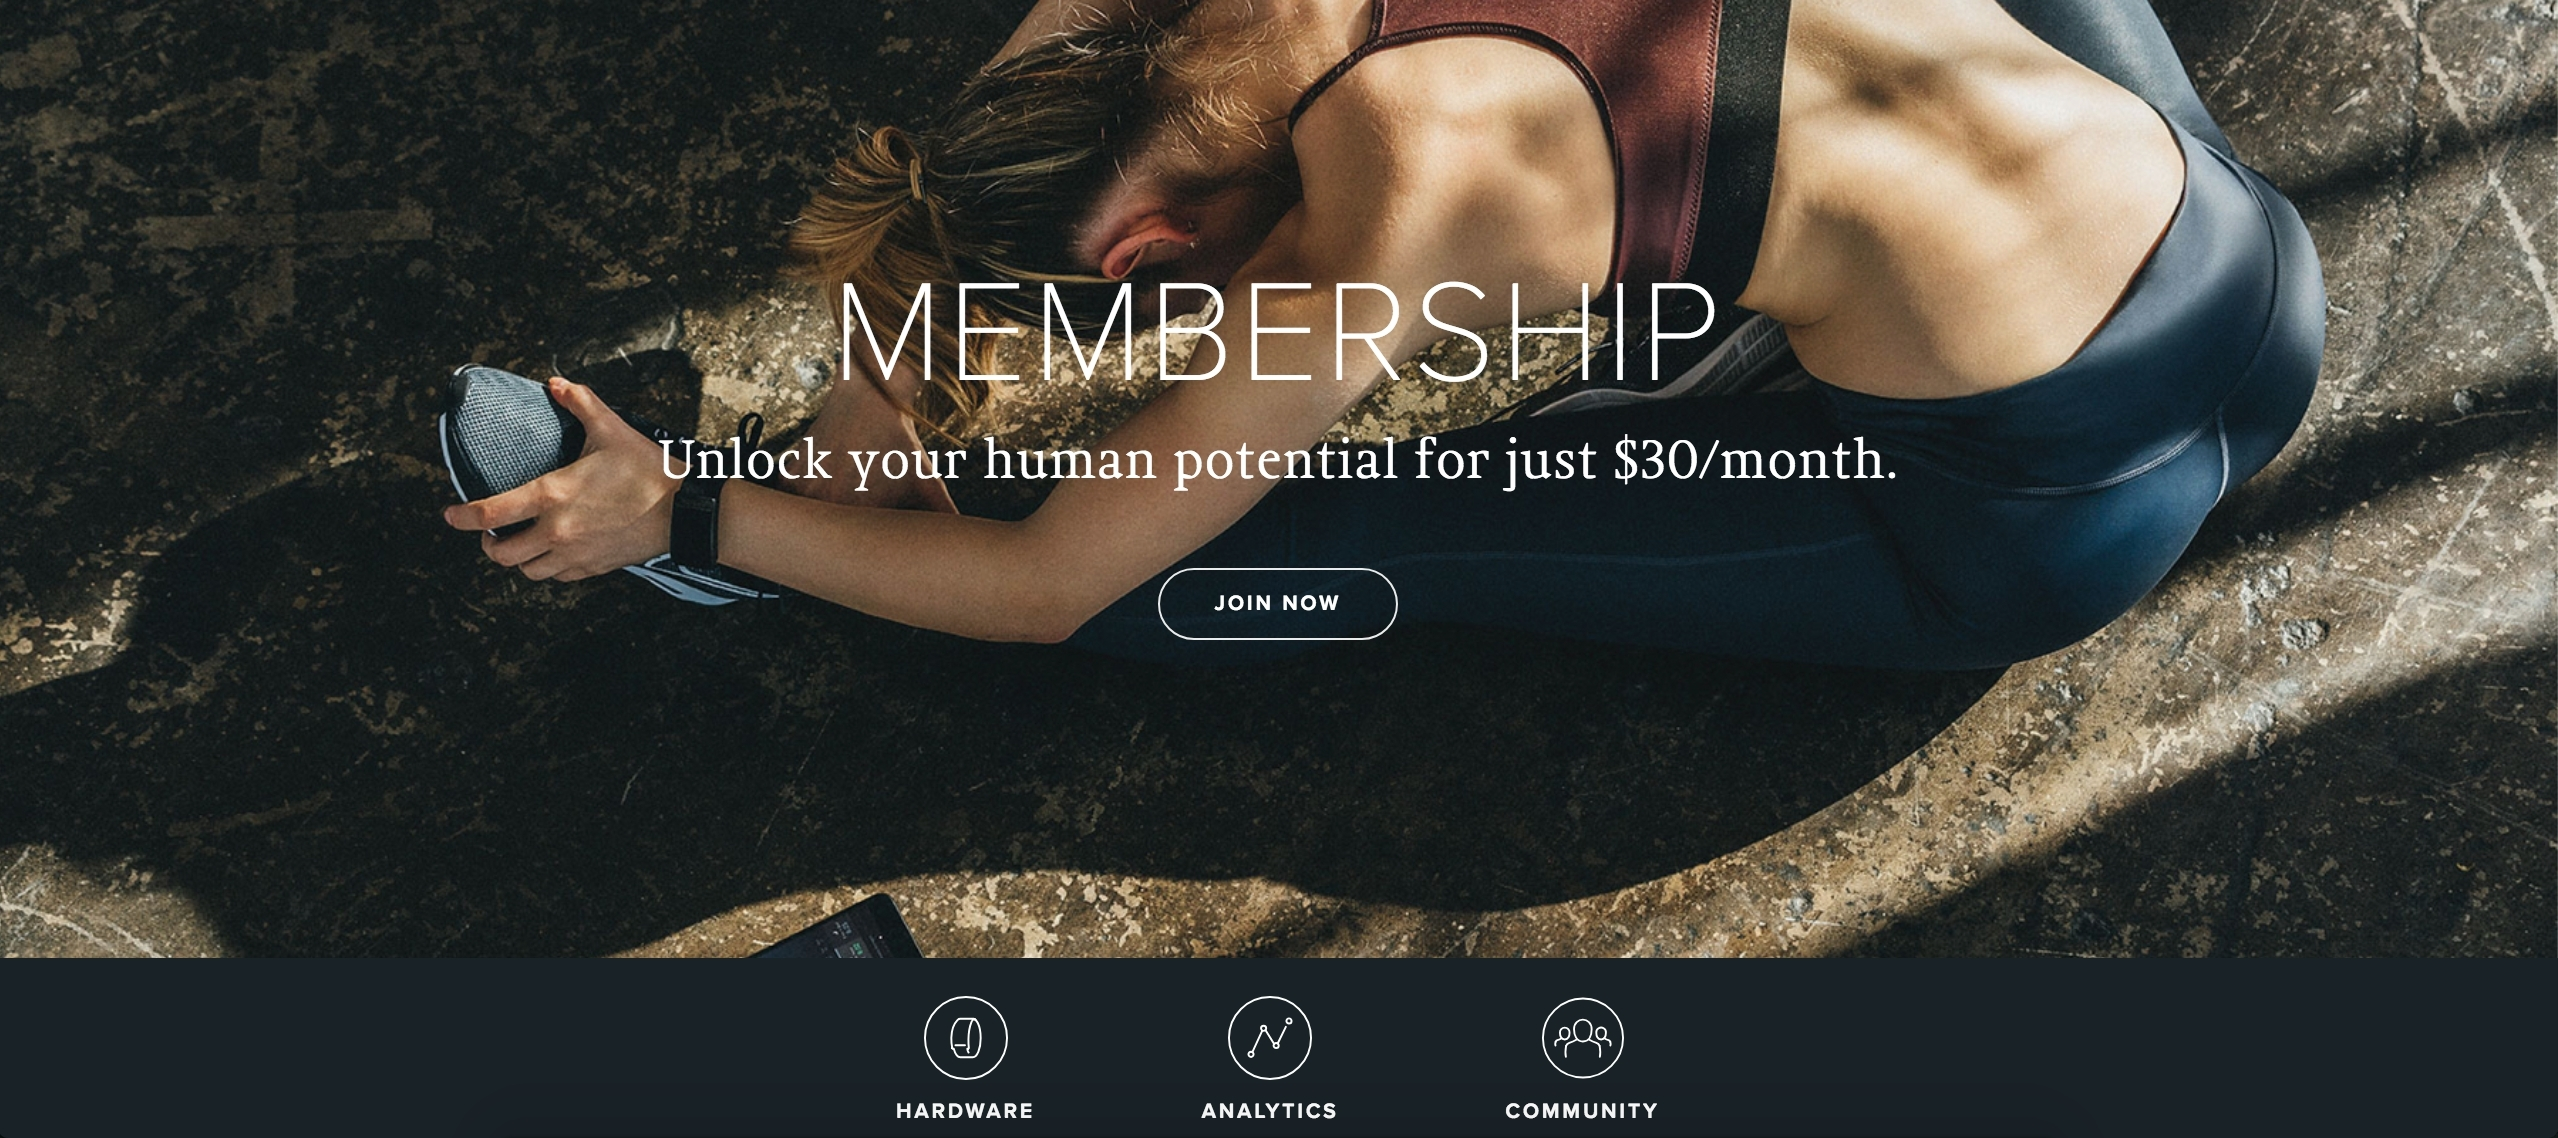 Whoop Launches New Consumer Membership To Unlock Human Performance Business Wire